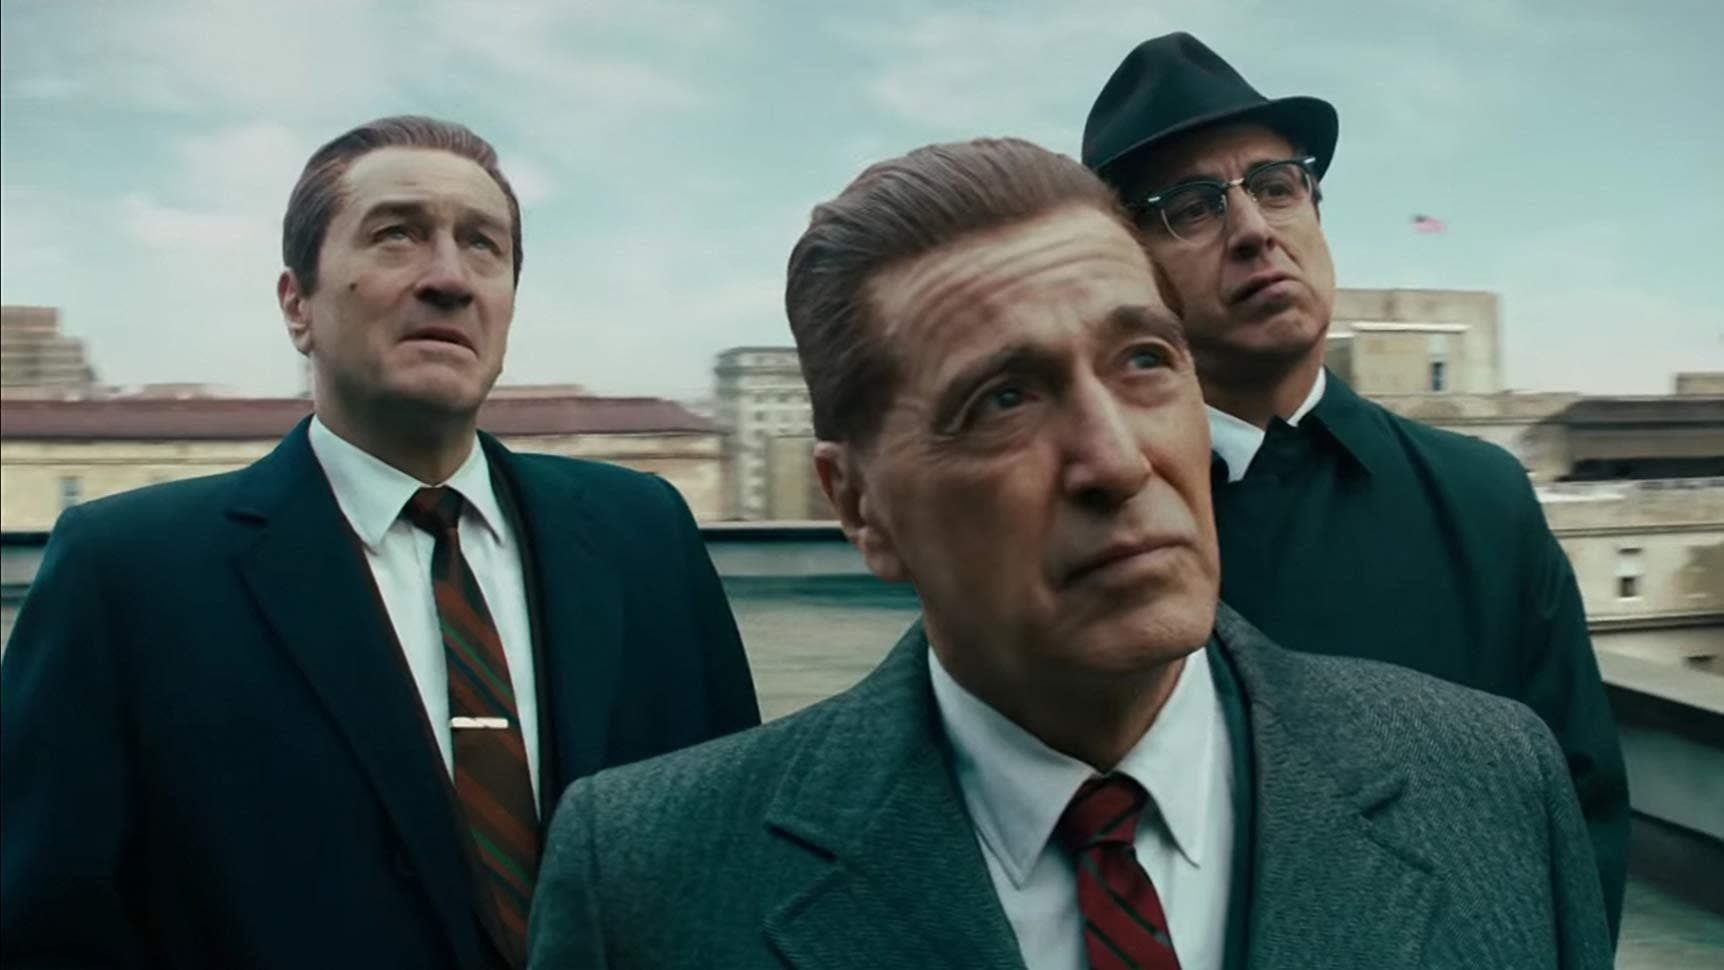 More than 26 million Netflix subscribers viewed 'The Irishman' in seven days, chief content officer says